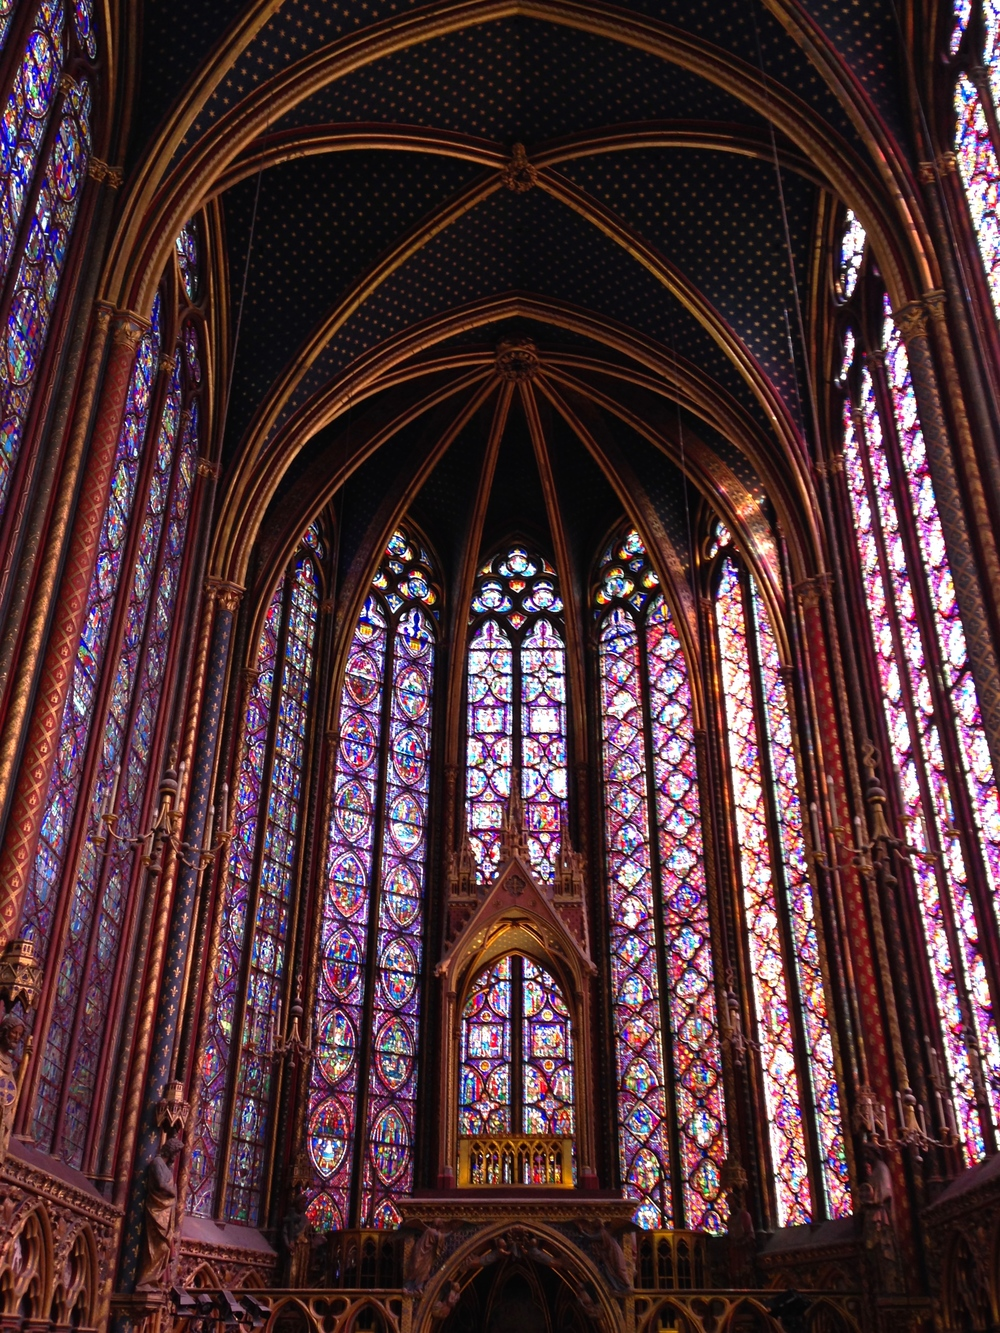 The upper cathedral of Sainte-Chappelle. Indescribably tall, indescribably breathtaking.